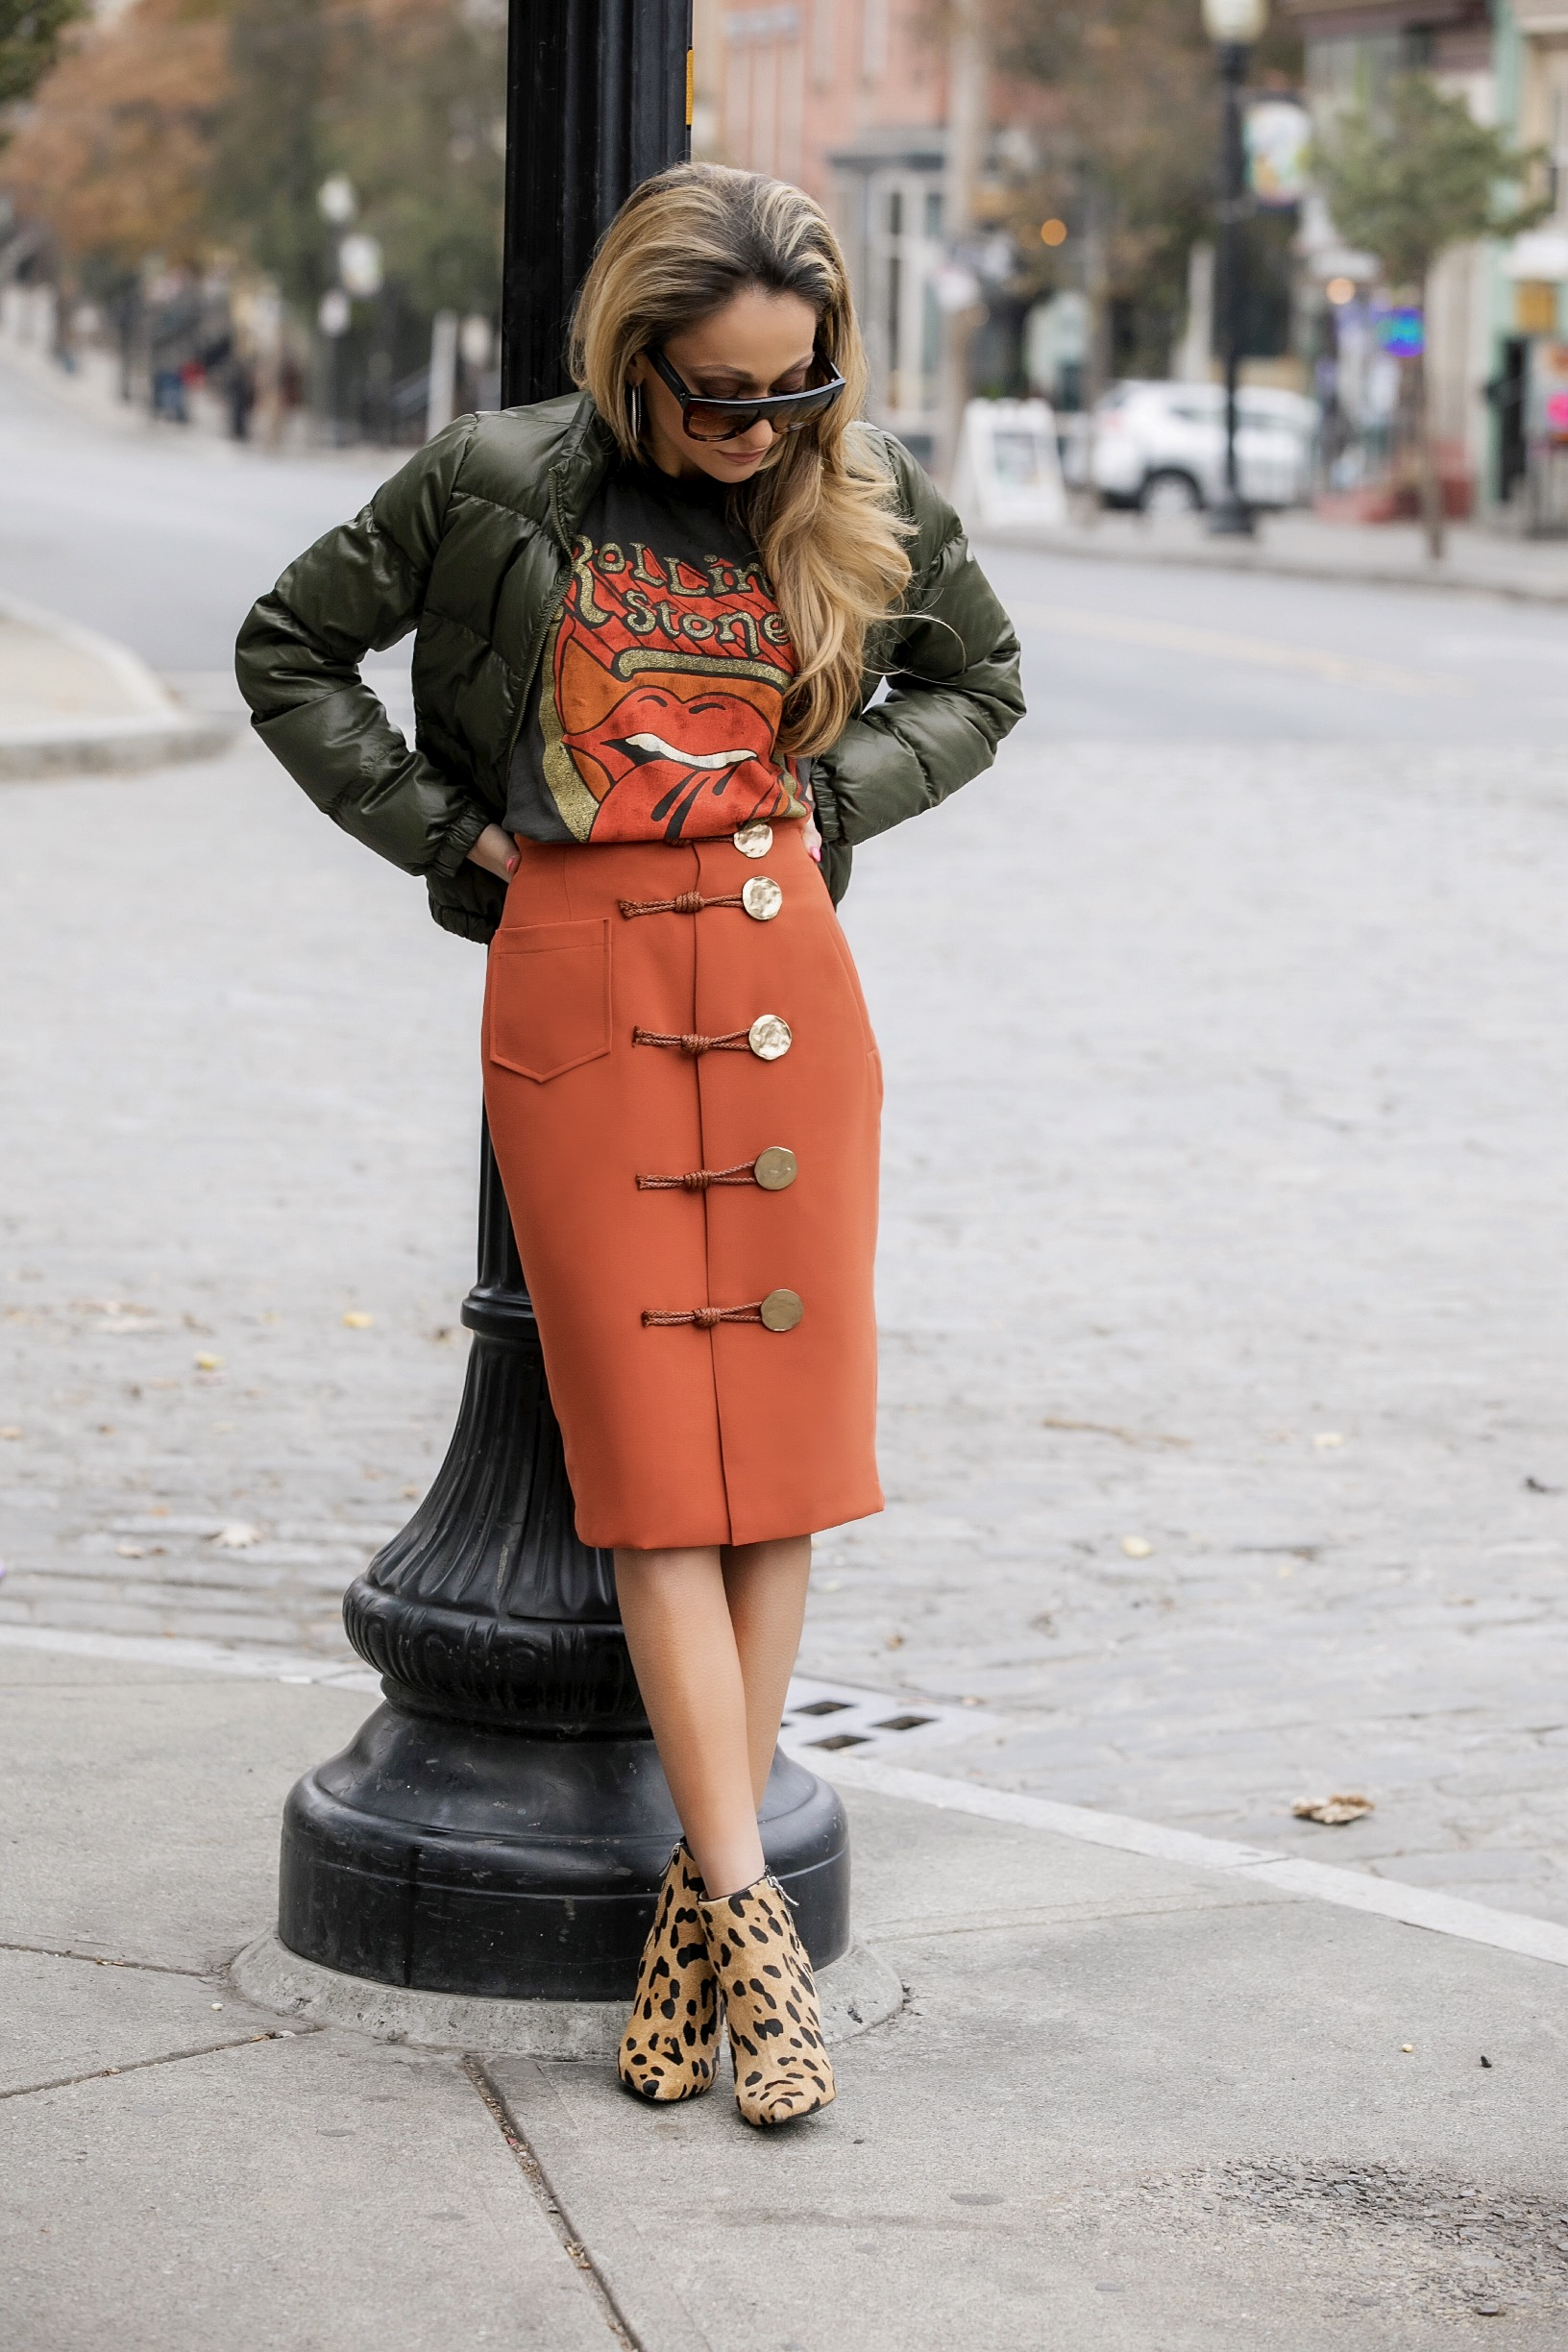 NYC streetstyle in madeworn tee, storets skirt, and leopard booties